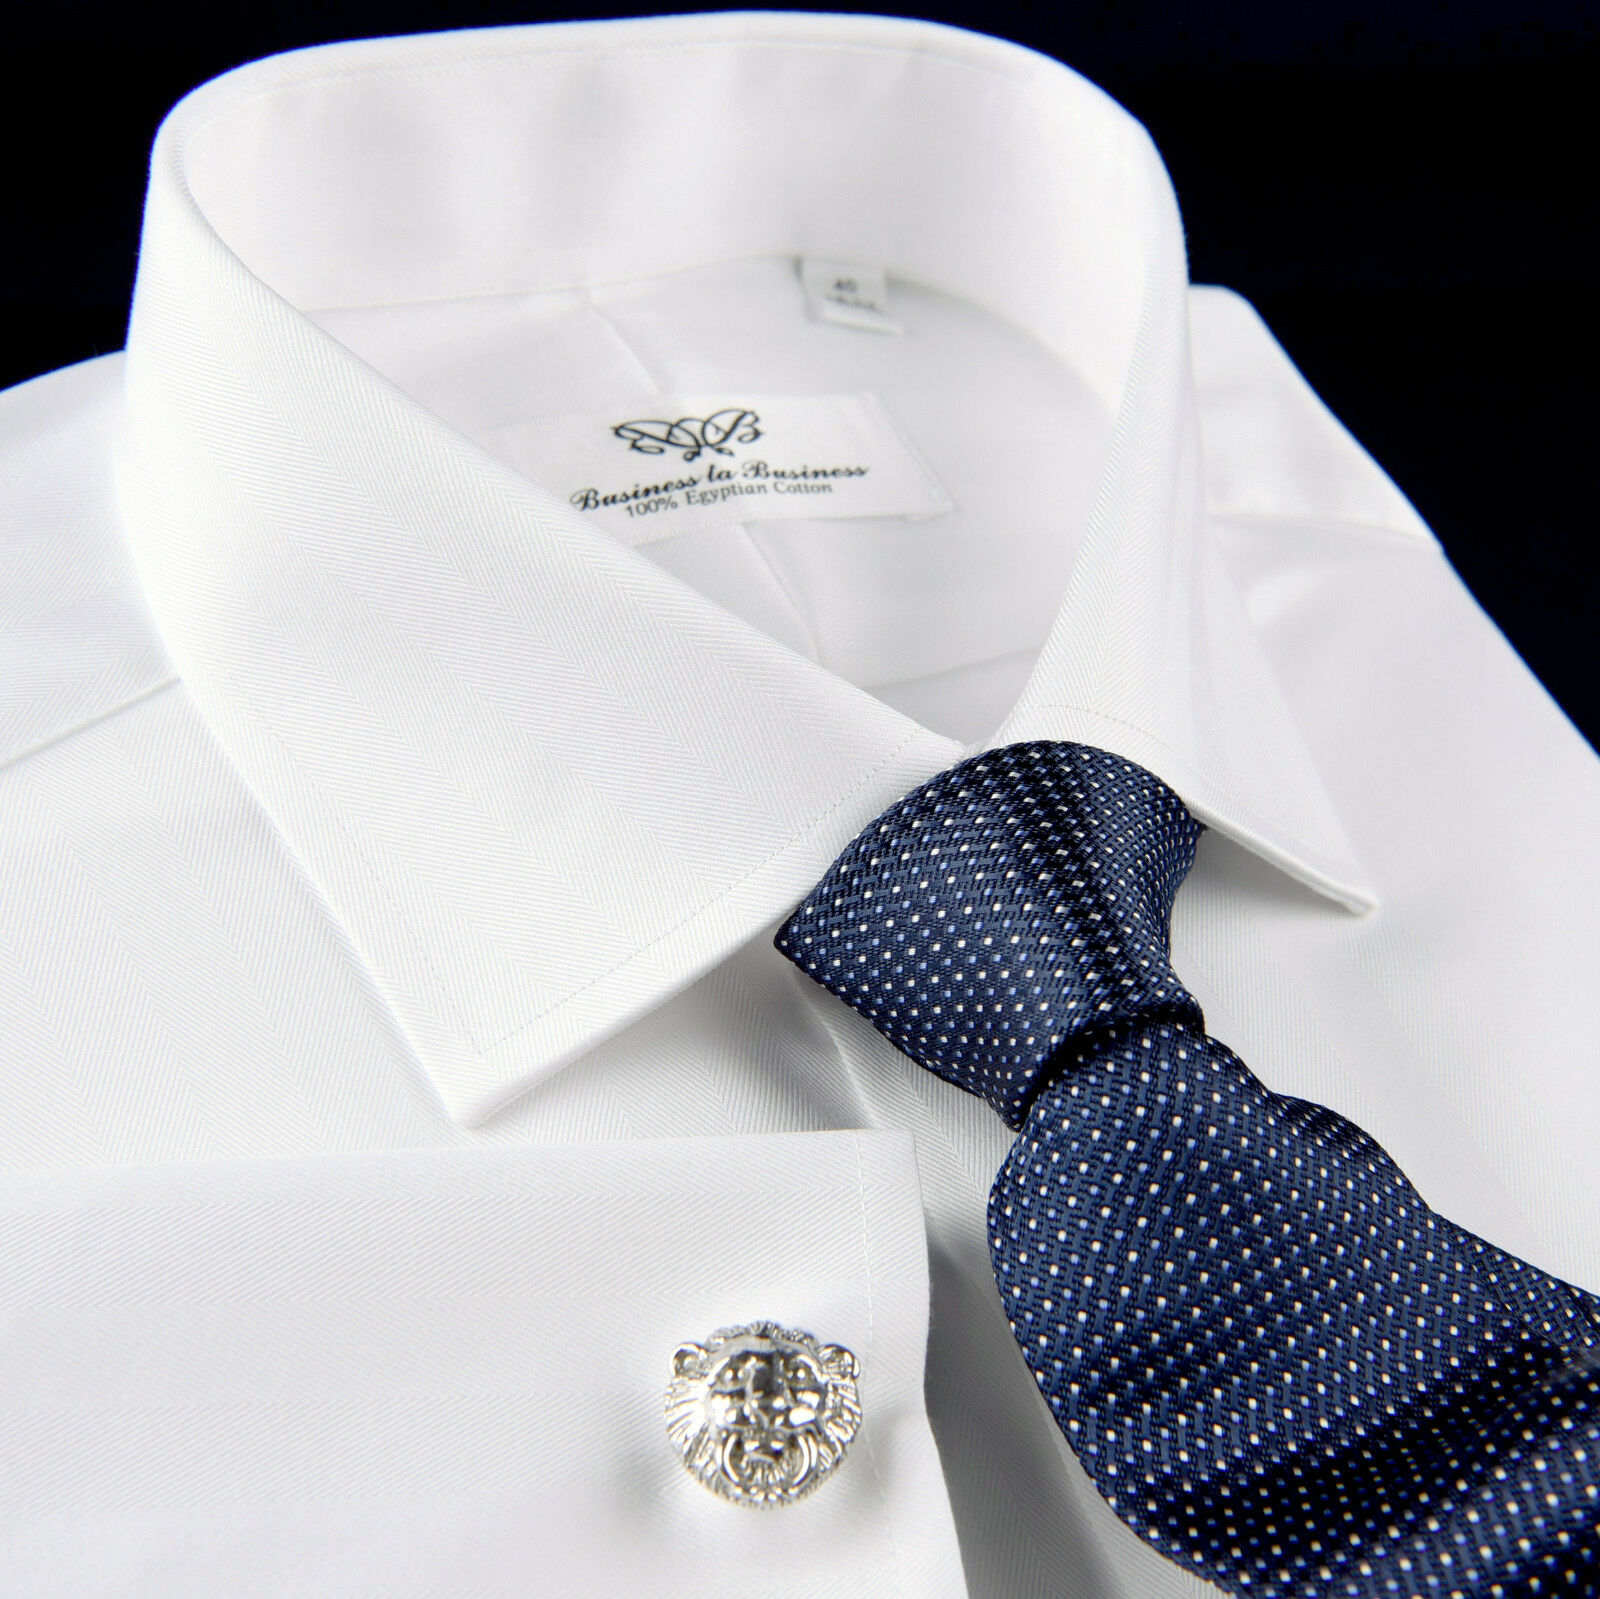 Weiß Twill Formal Geschäft Dress Shirt Corporate Boss Egyptian Cotton La Plata